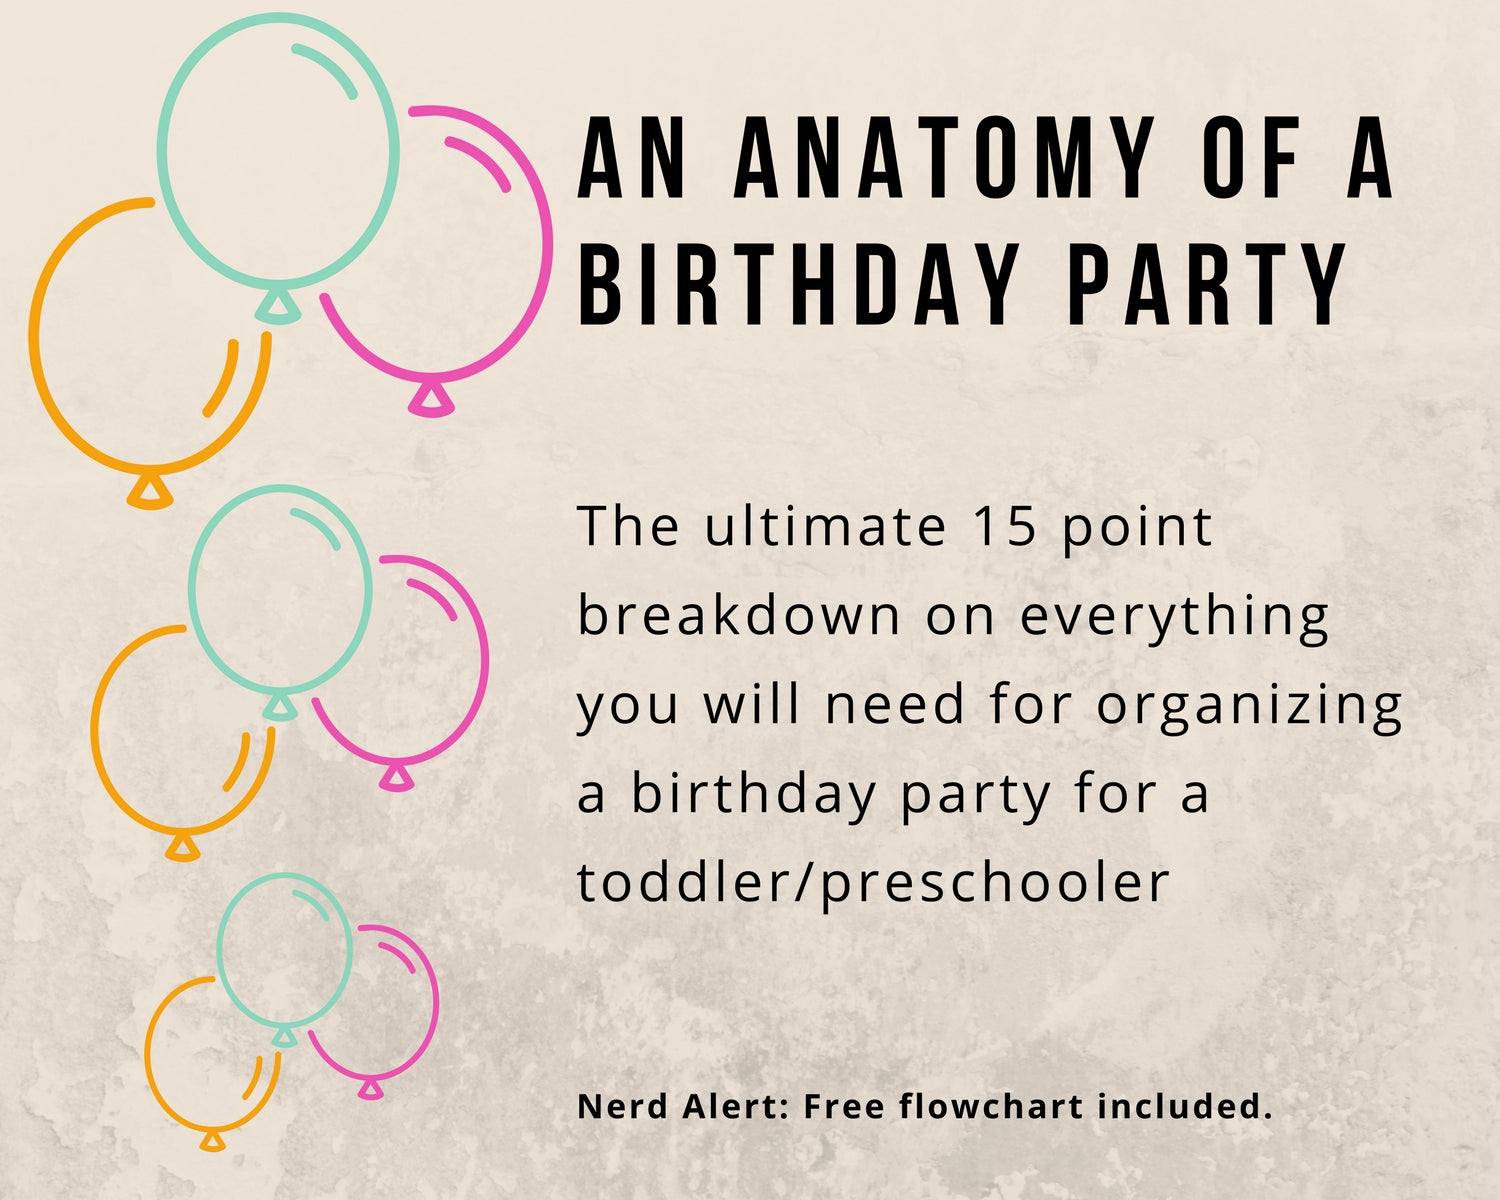 An Anatomy of a birthday